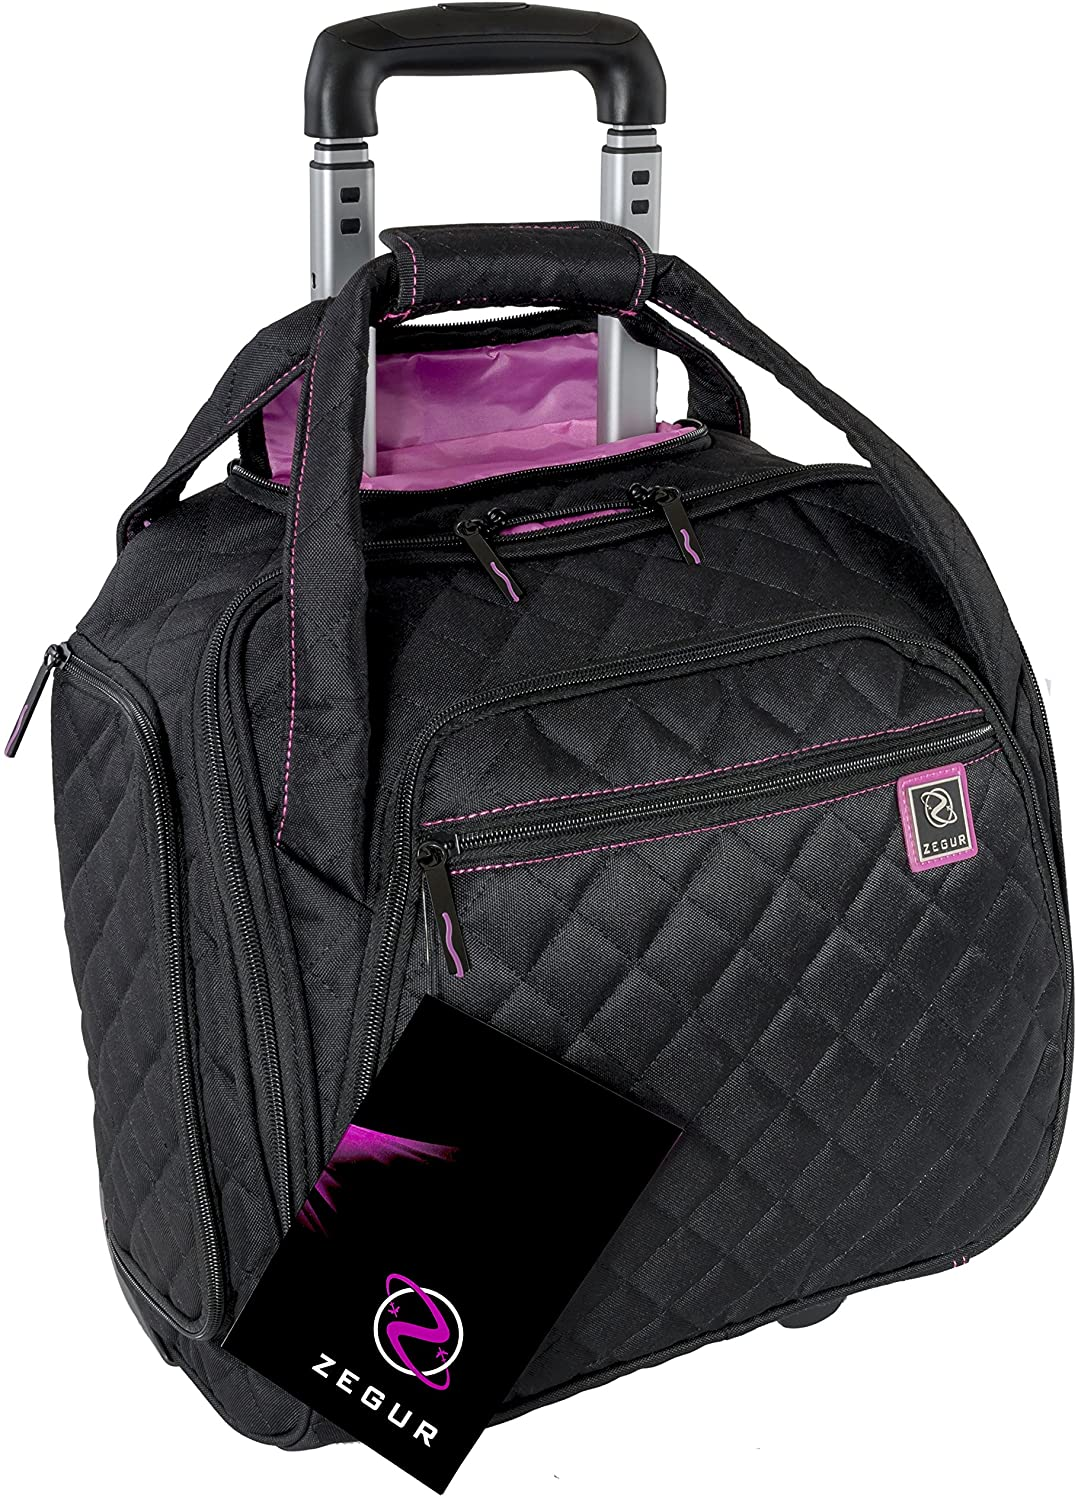 ZEGUR Quilted Rolling Underseat Carry-On Luggage - Wheeled Travel Tote Bag (Black)